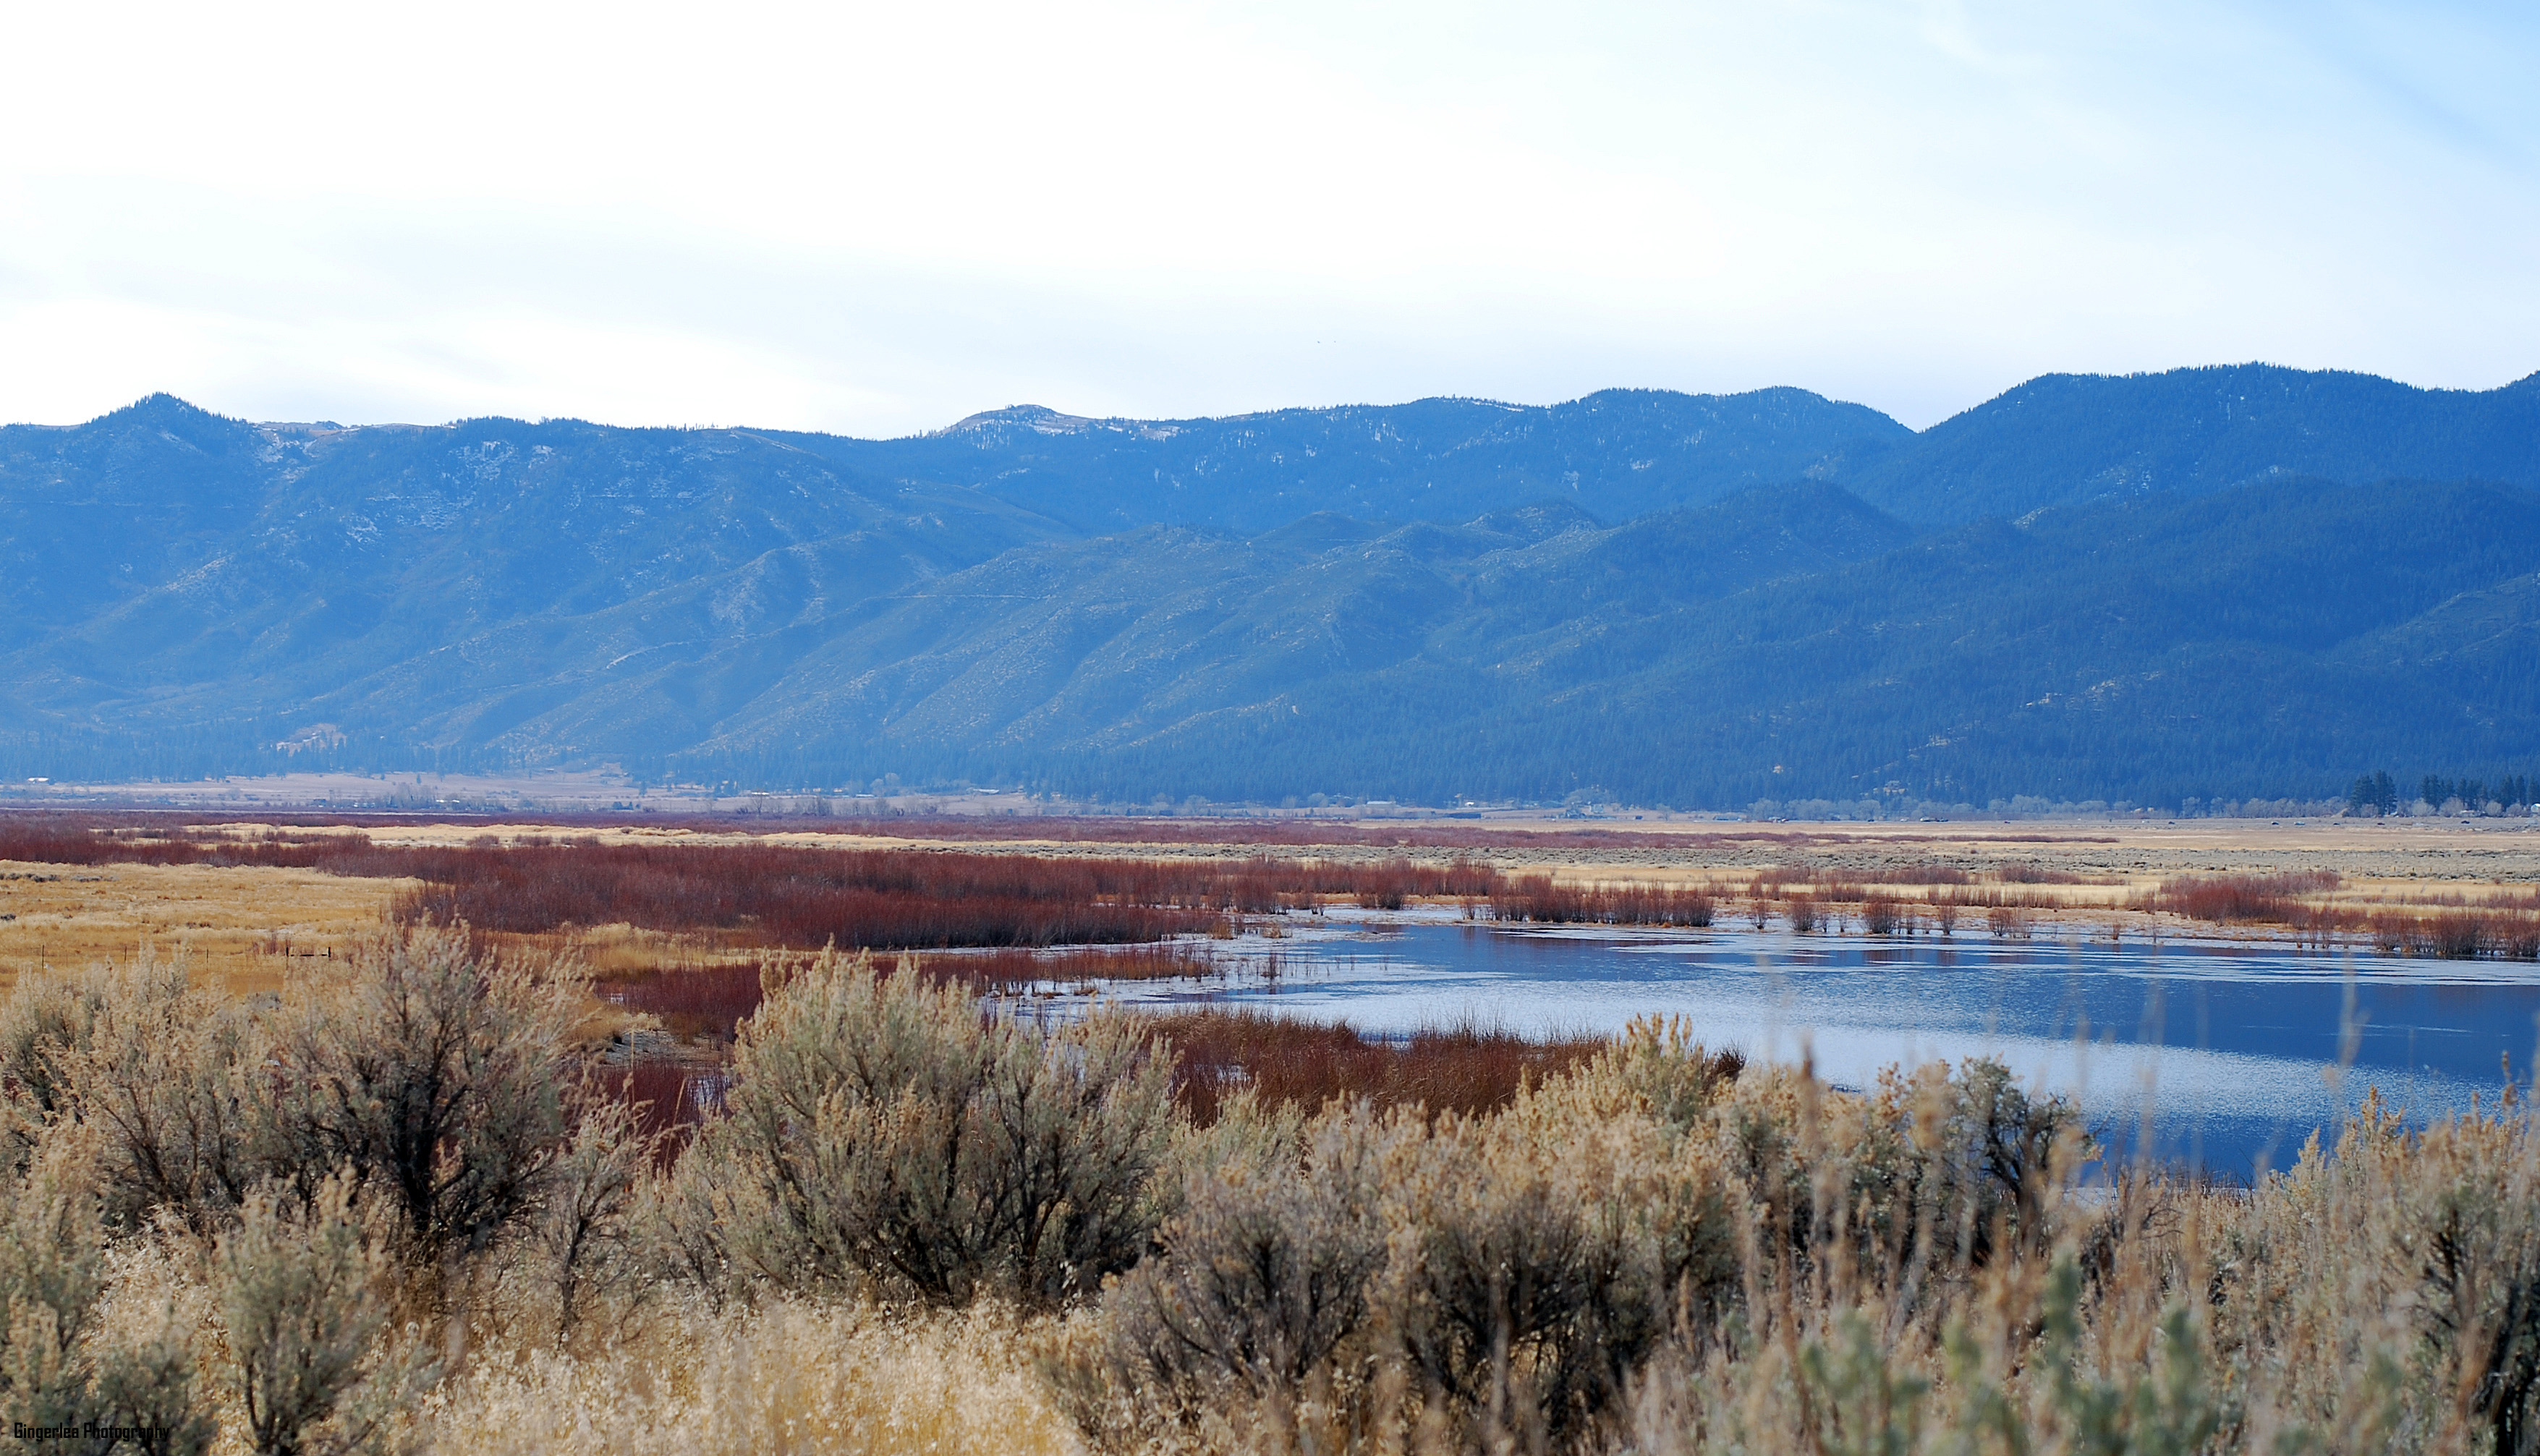 washoe valley Landwatch has 68 listings for sale in washoe valley, nv view listing photos, contact sellers, and use filters to find listings of land for sale .